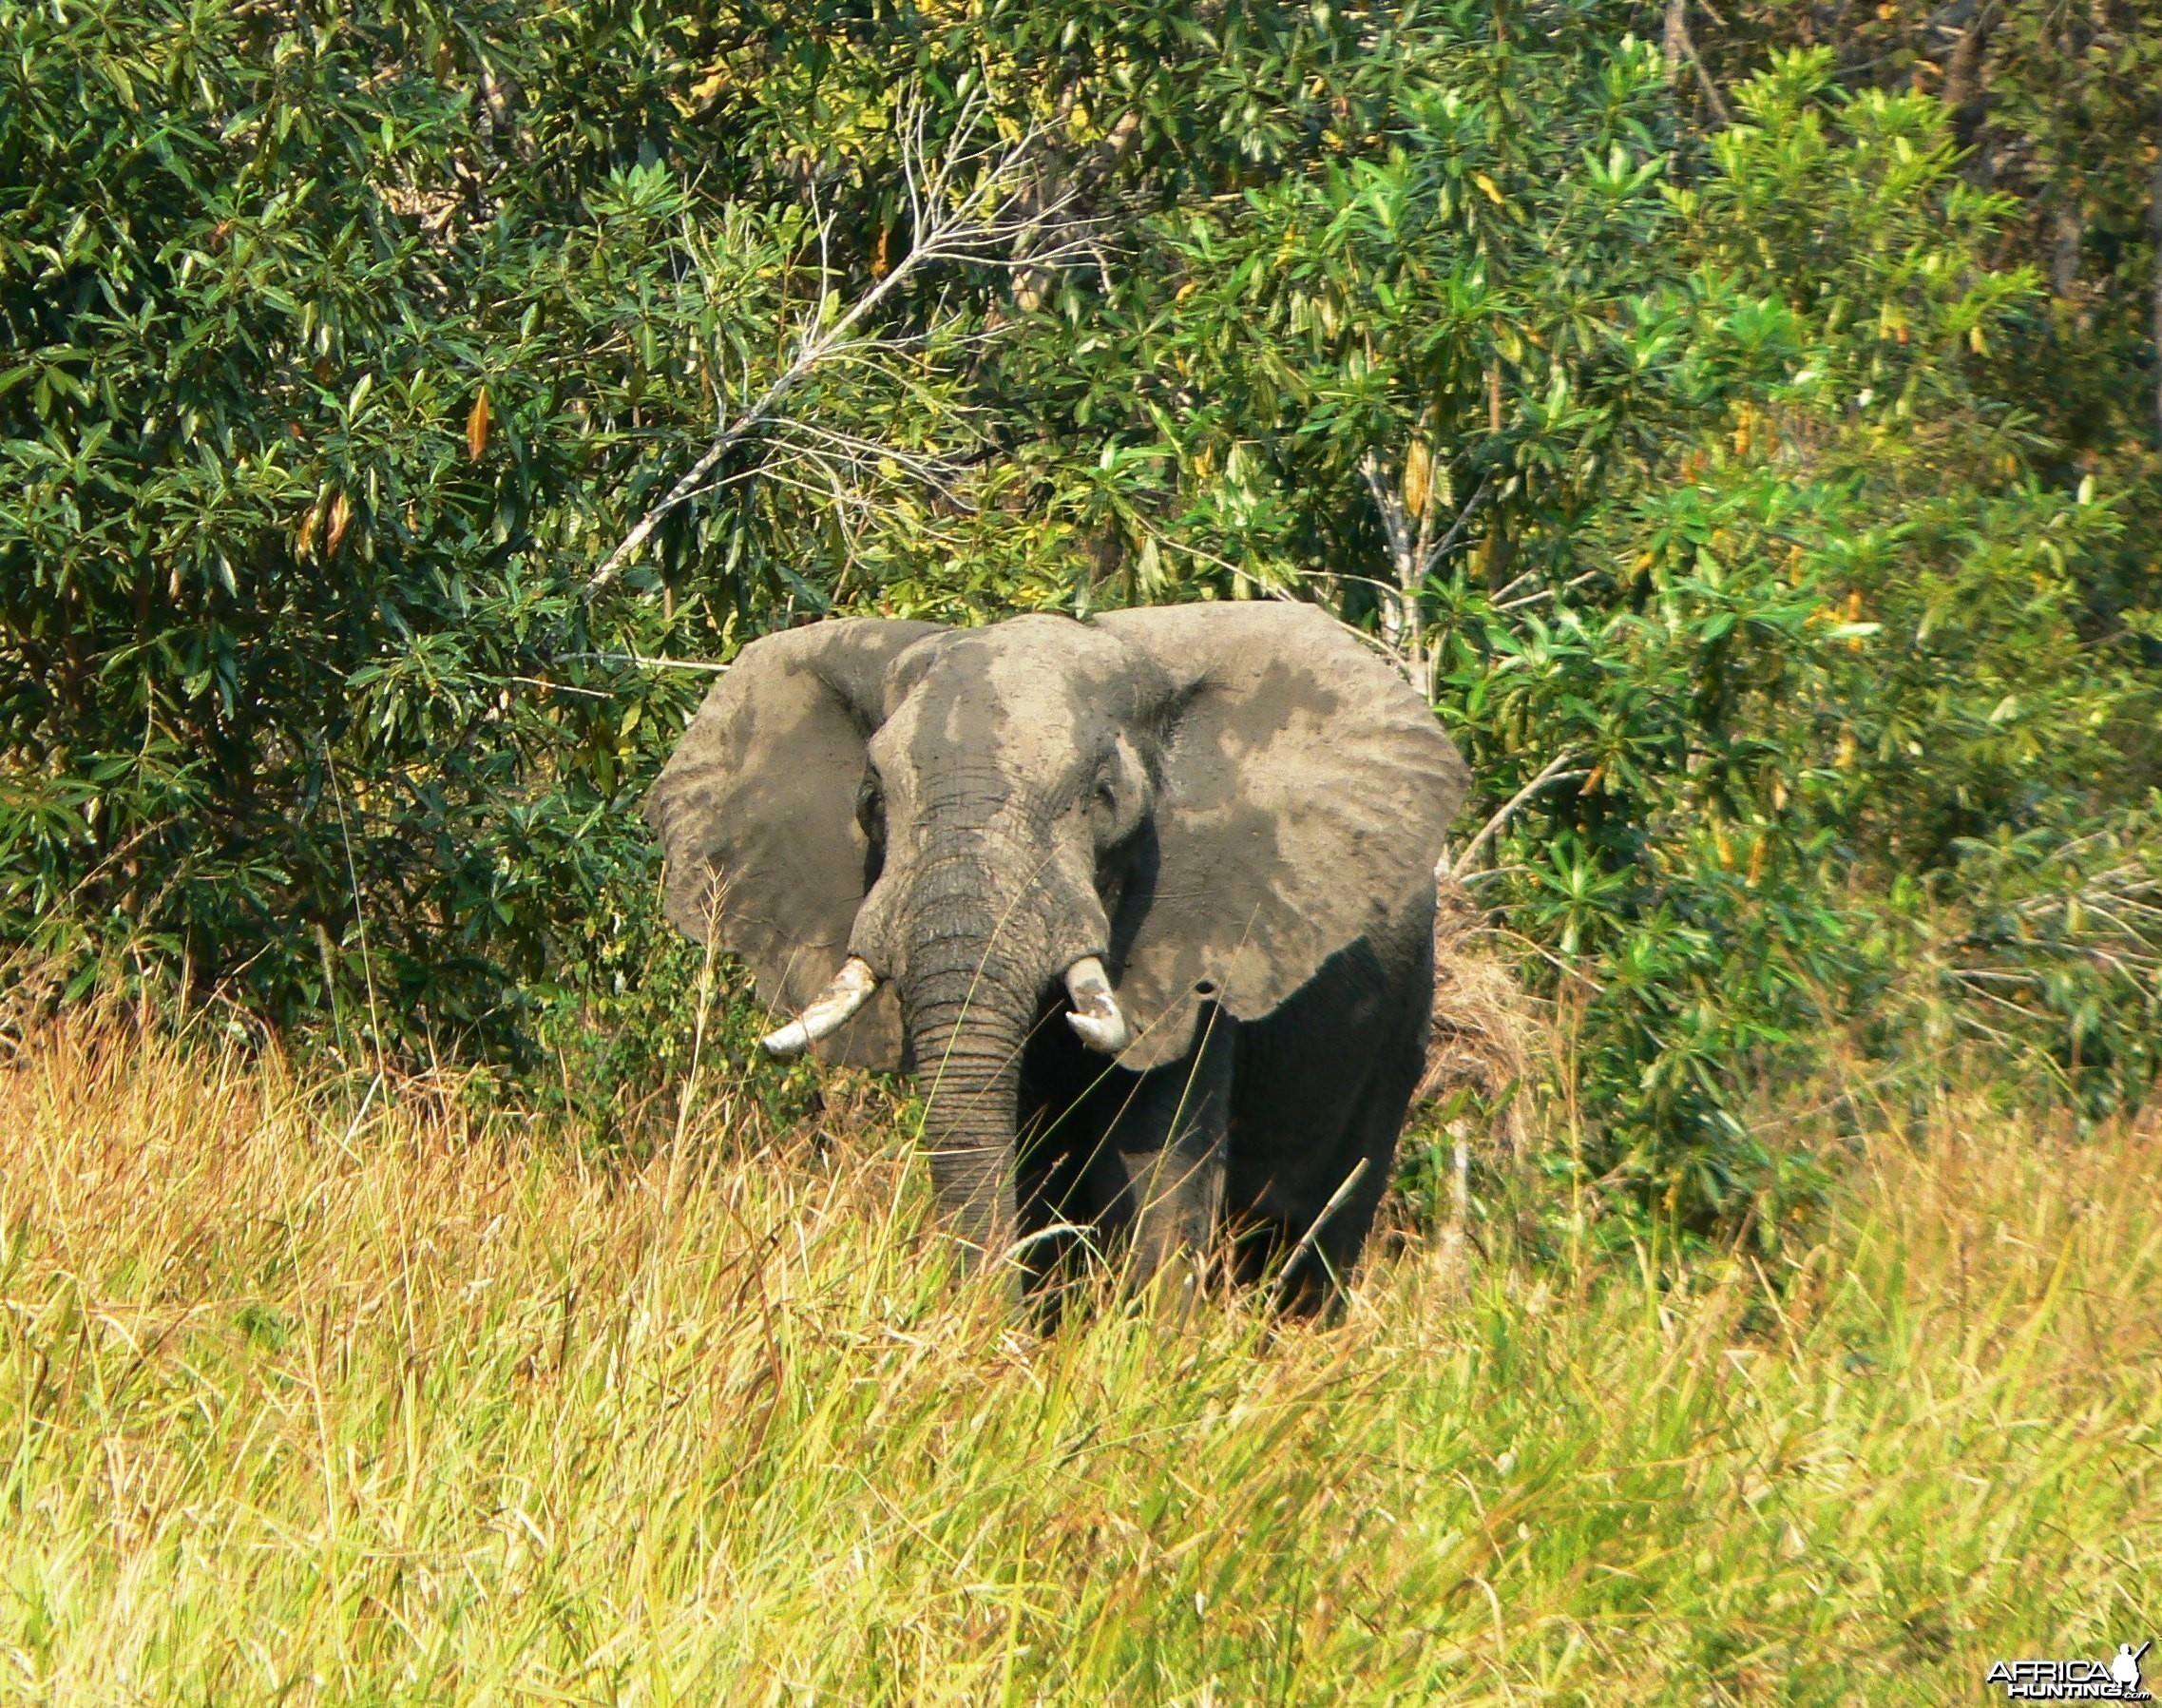 This one sees us... Elephant in Tanzania